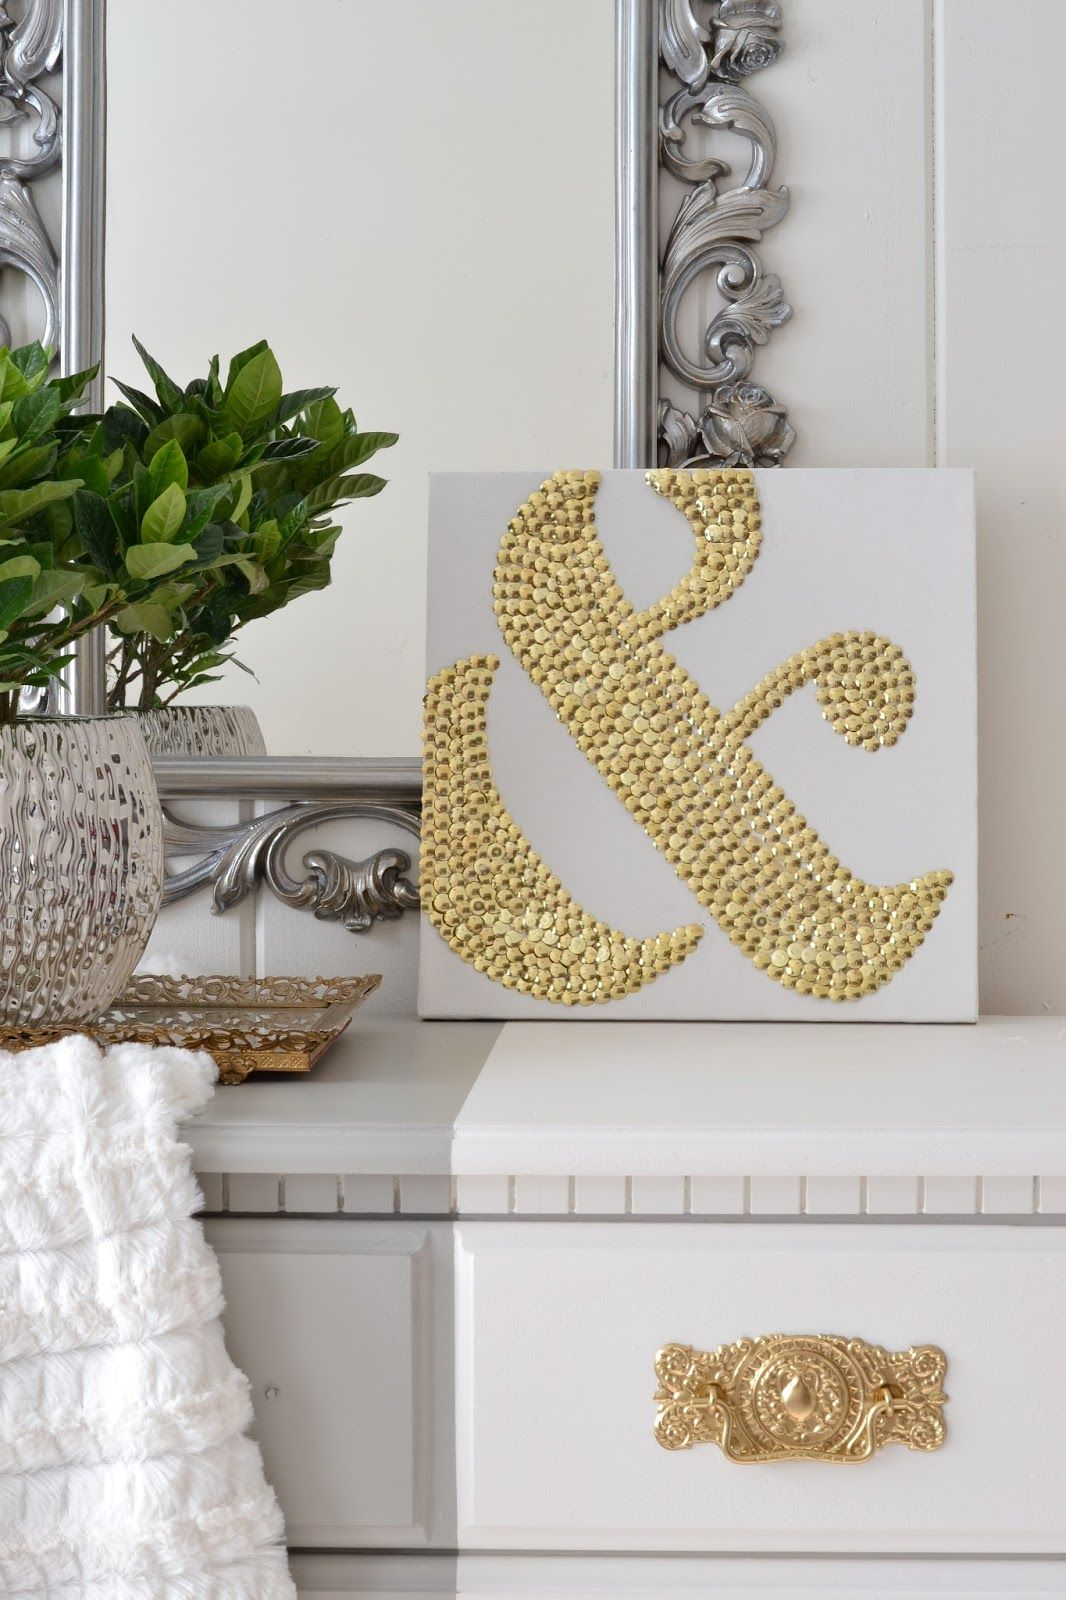 Stunning DIY Wall Art Ideas U0026 Tutorials   For Creative Juice DIY Ampersand  Art Using Thumbtacks:Use The Cheap Thumbtacks From The Dollar Store To Make  This ...